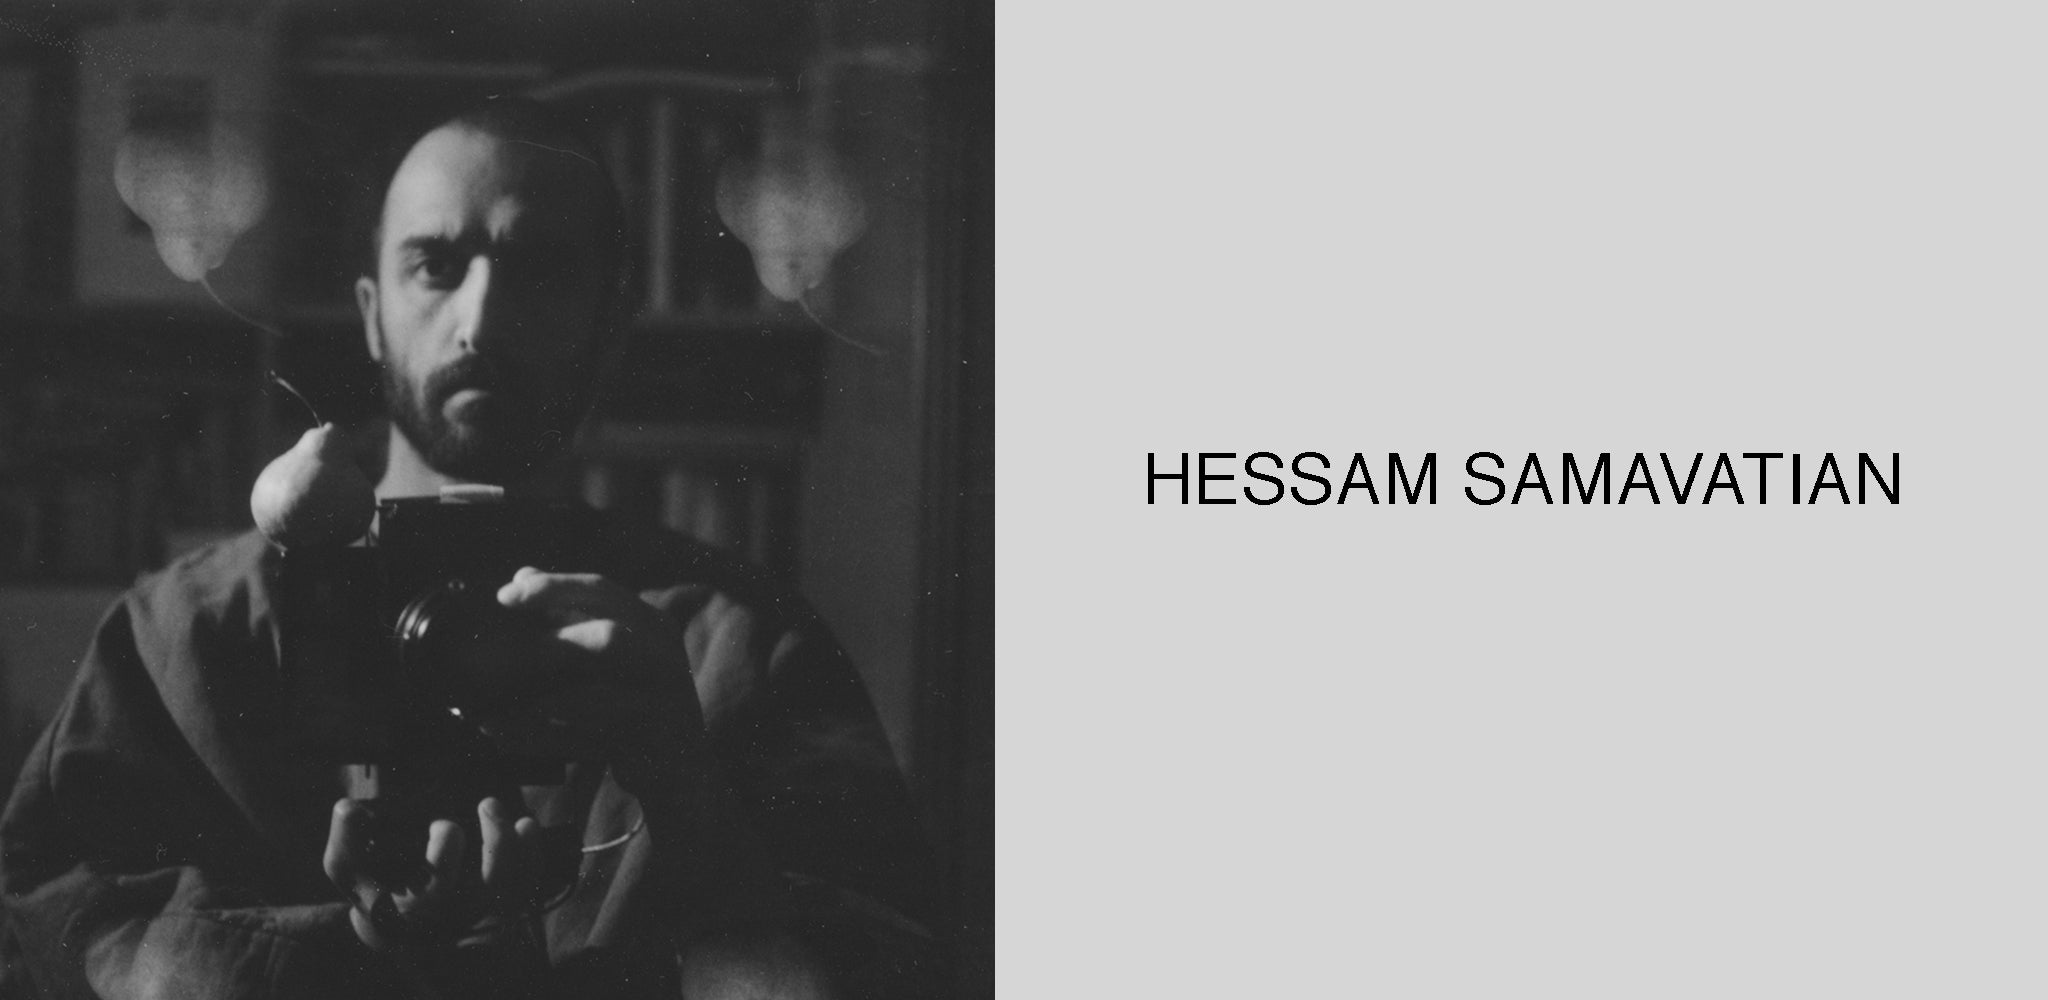 HESSAM SAMAVATIAN